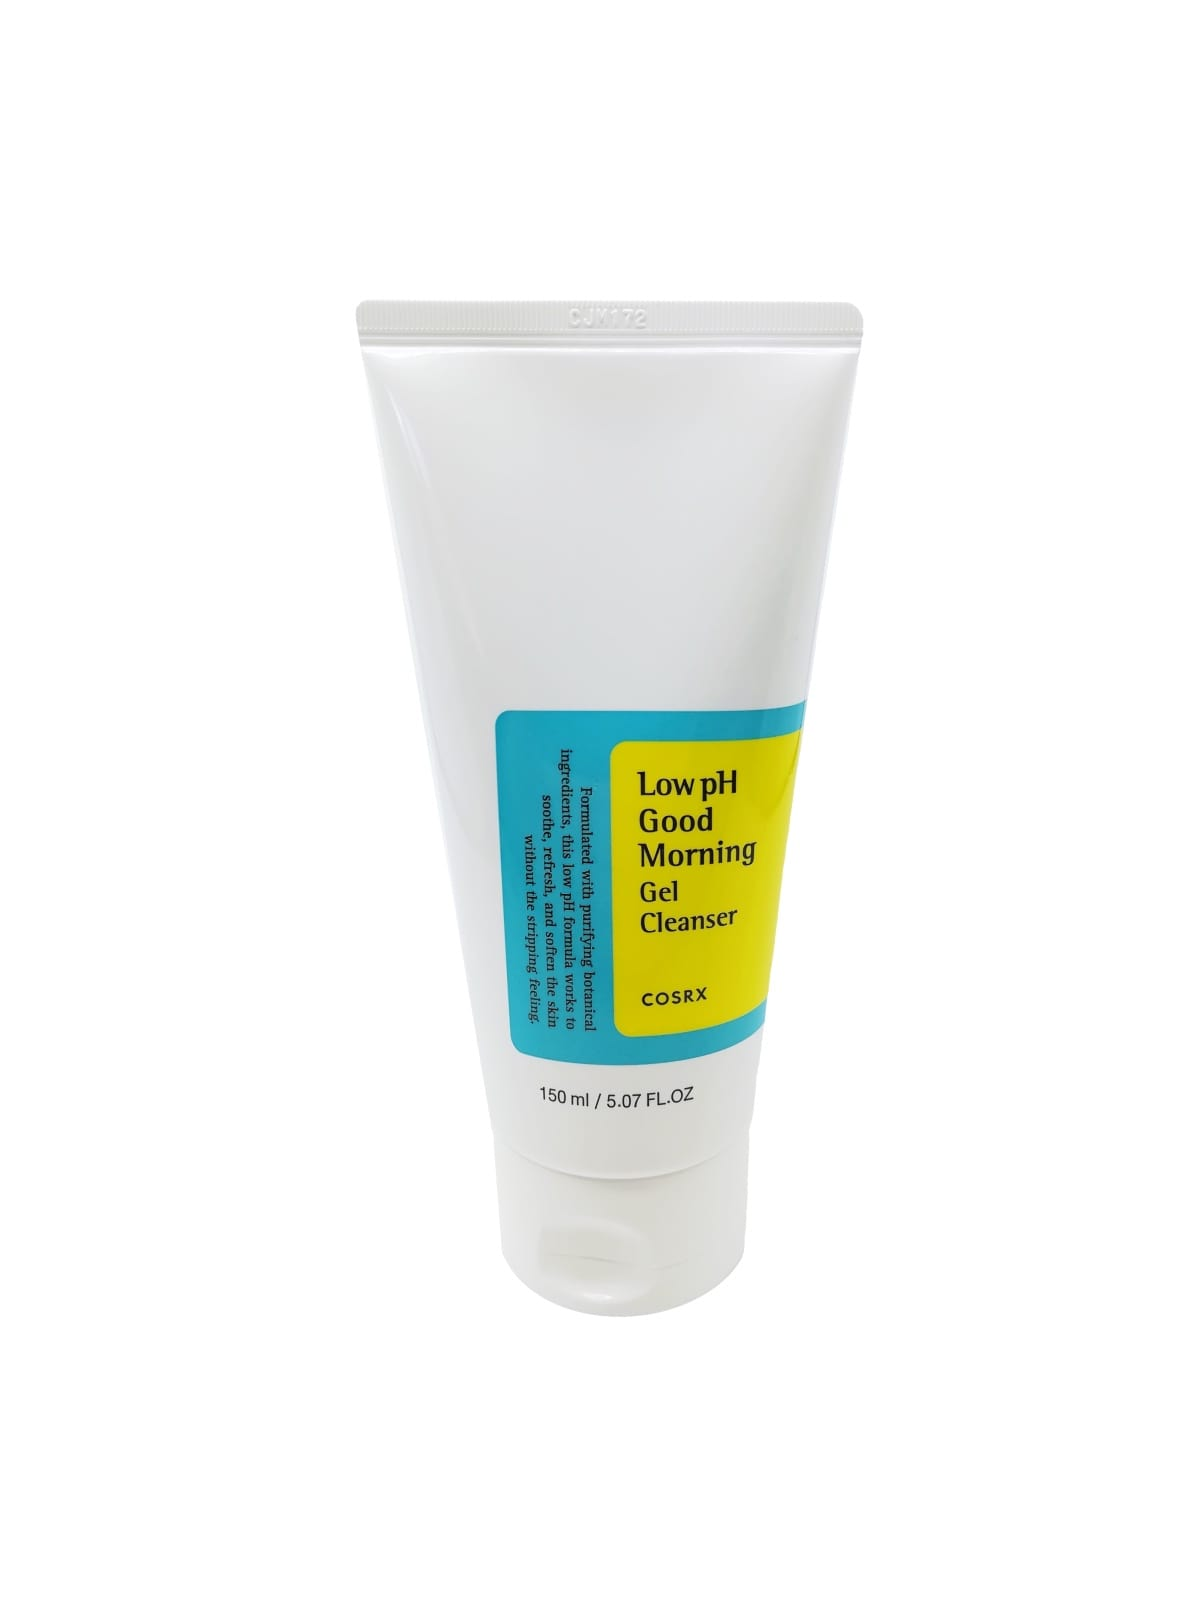 COSRX - Low pH Good Morning Gel Cleanser - Seoul Maid